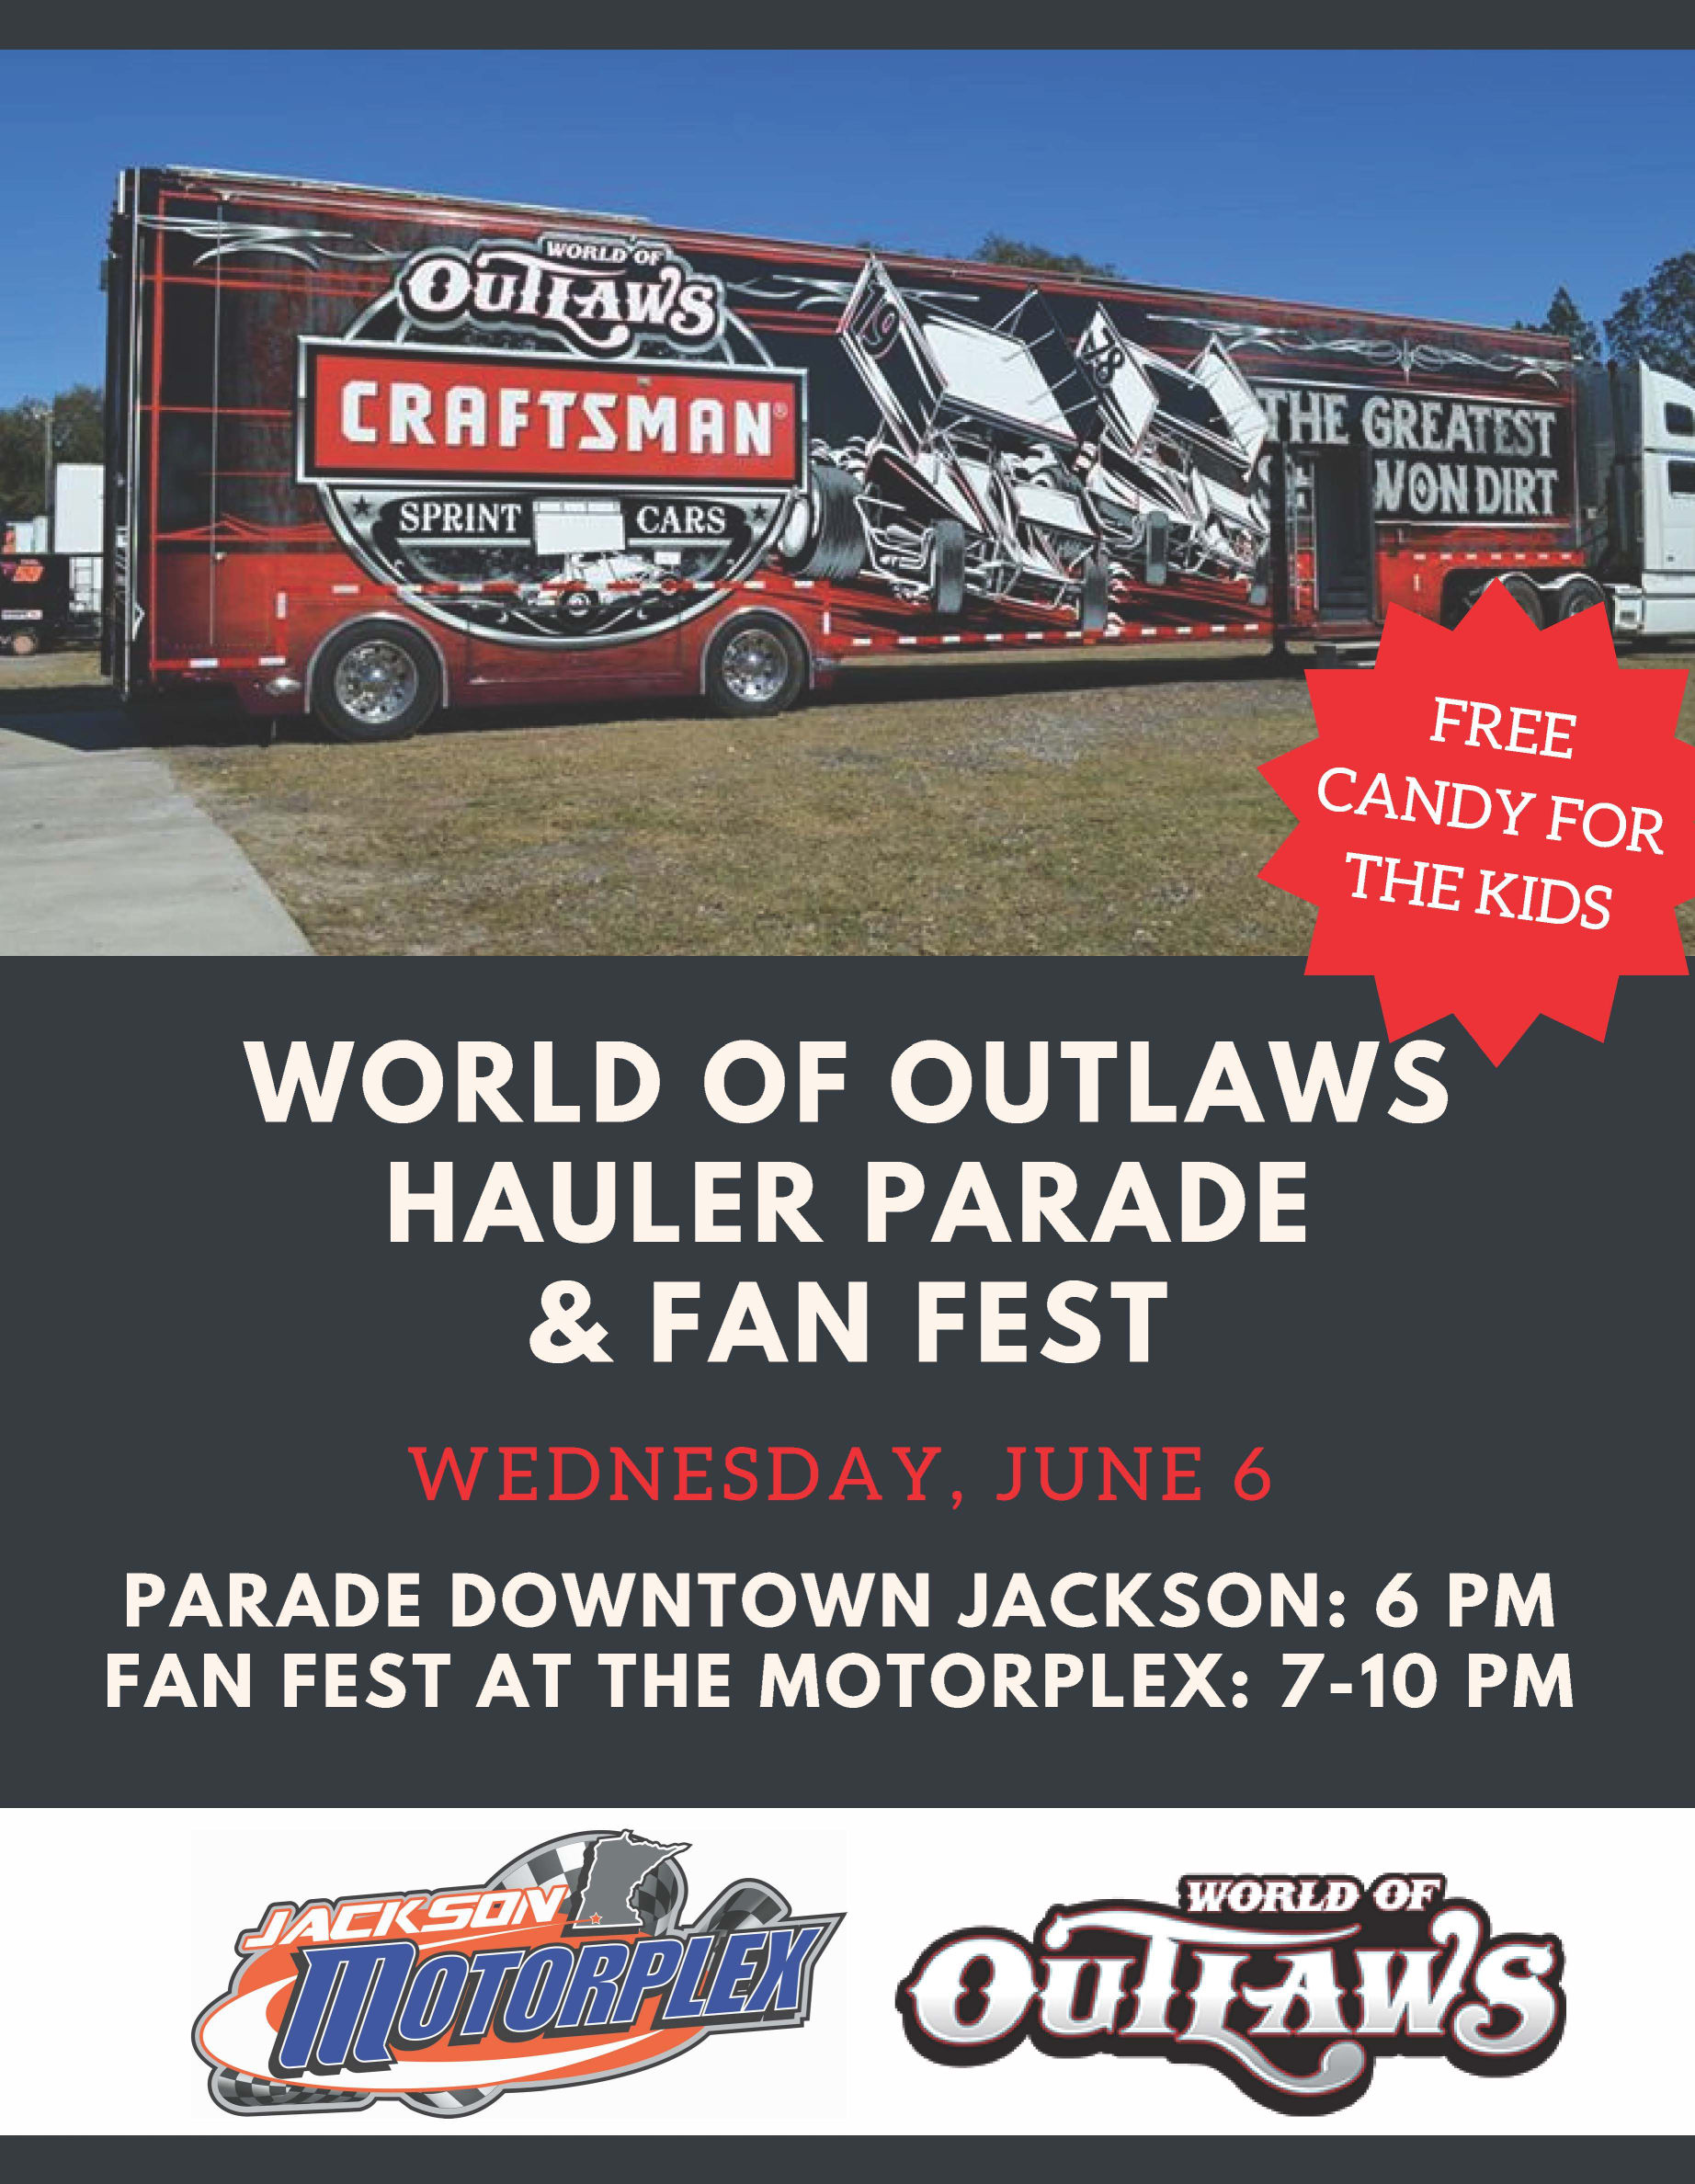 World-of-outlaws-Hauler-Parade-and-Fan-Fest-(1)-w1844.jpg